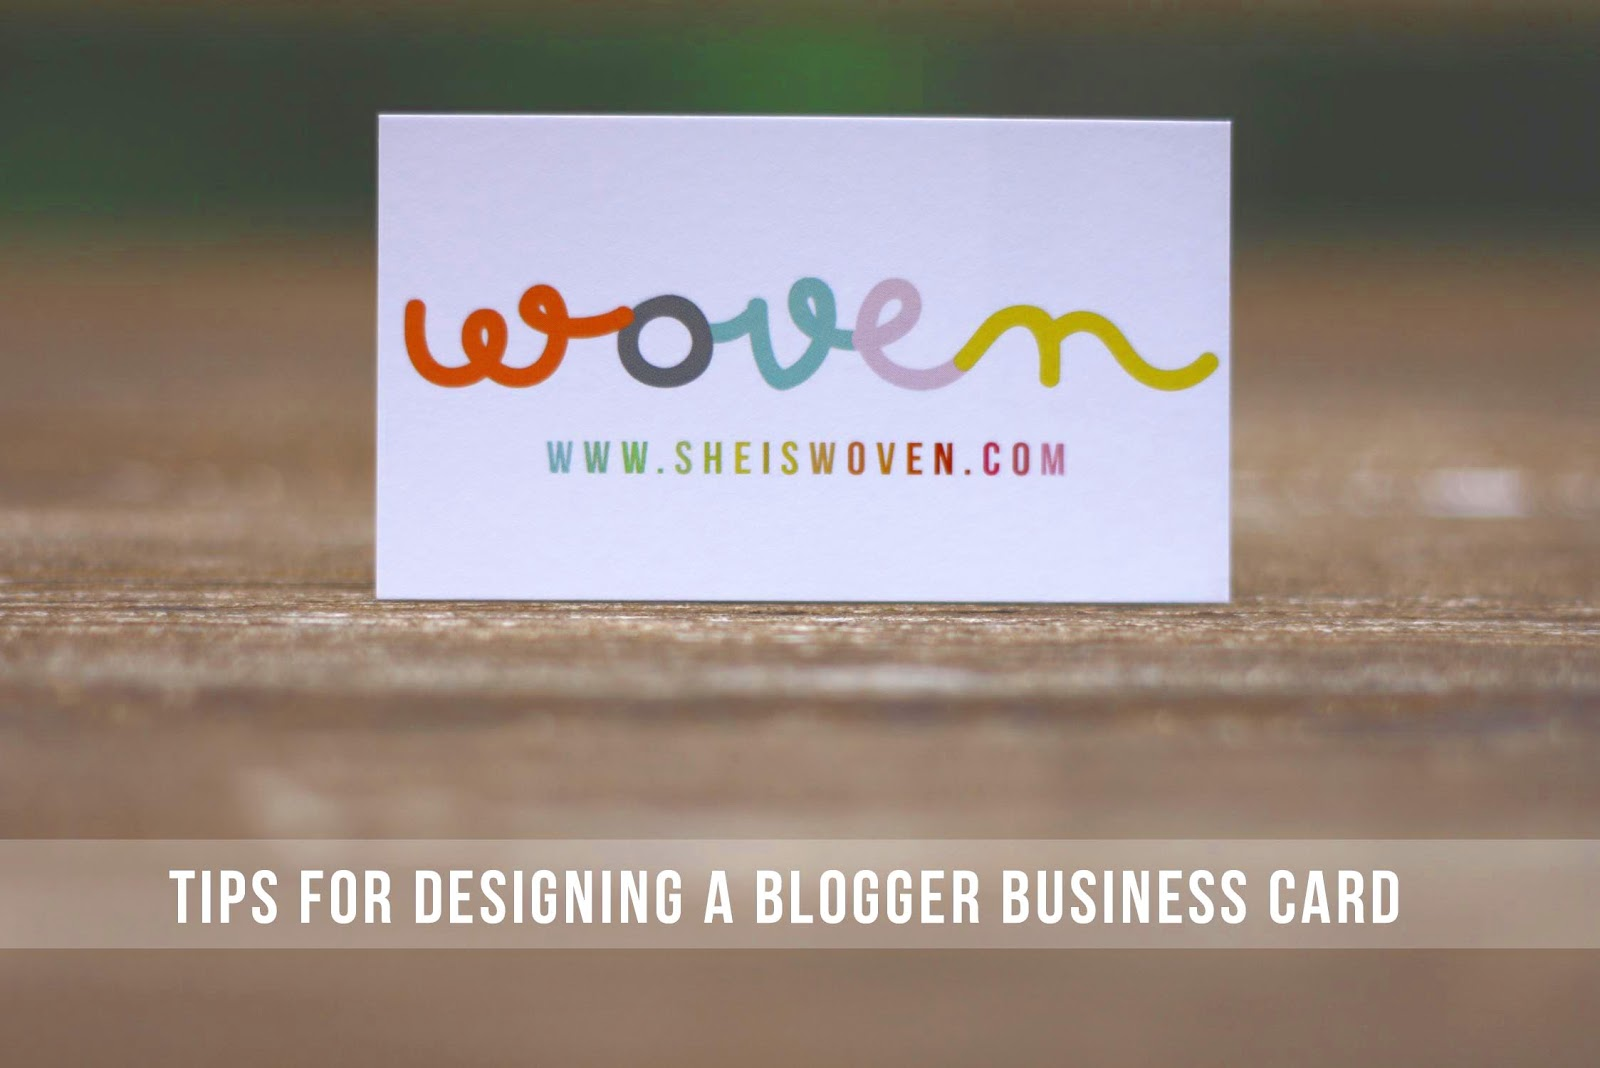 Sample Blogger Business Cards Image collections - Card Design And ...